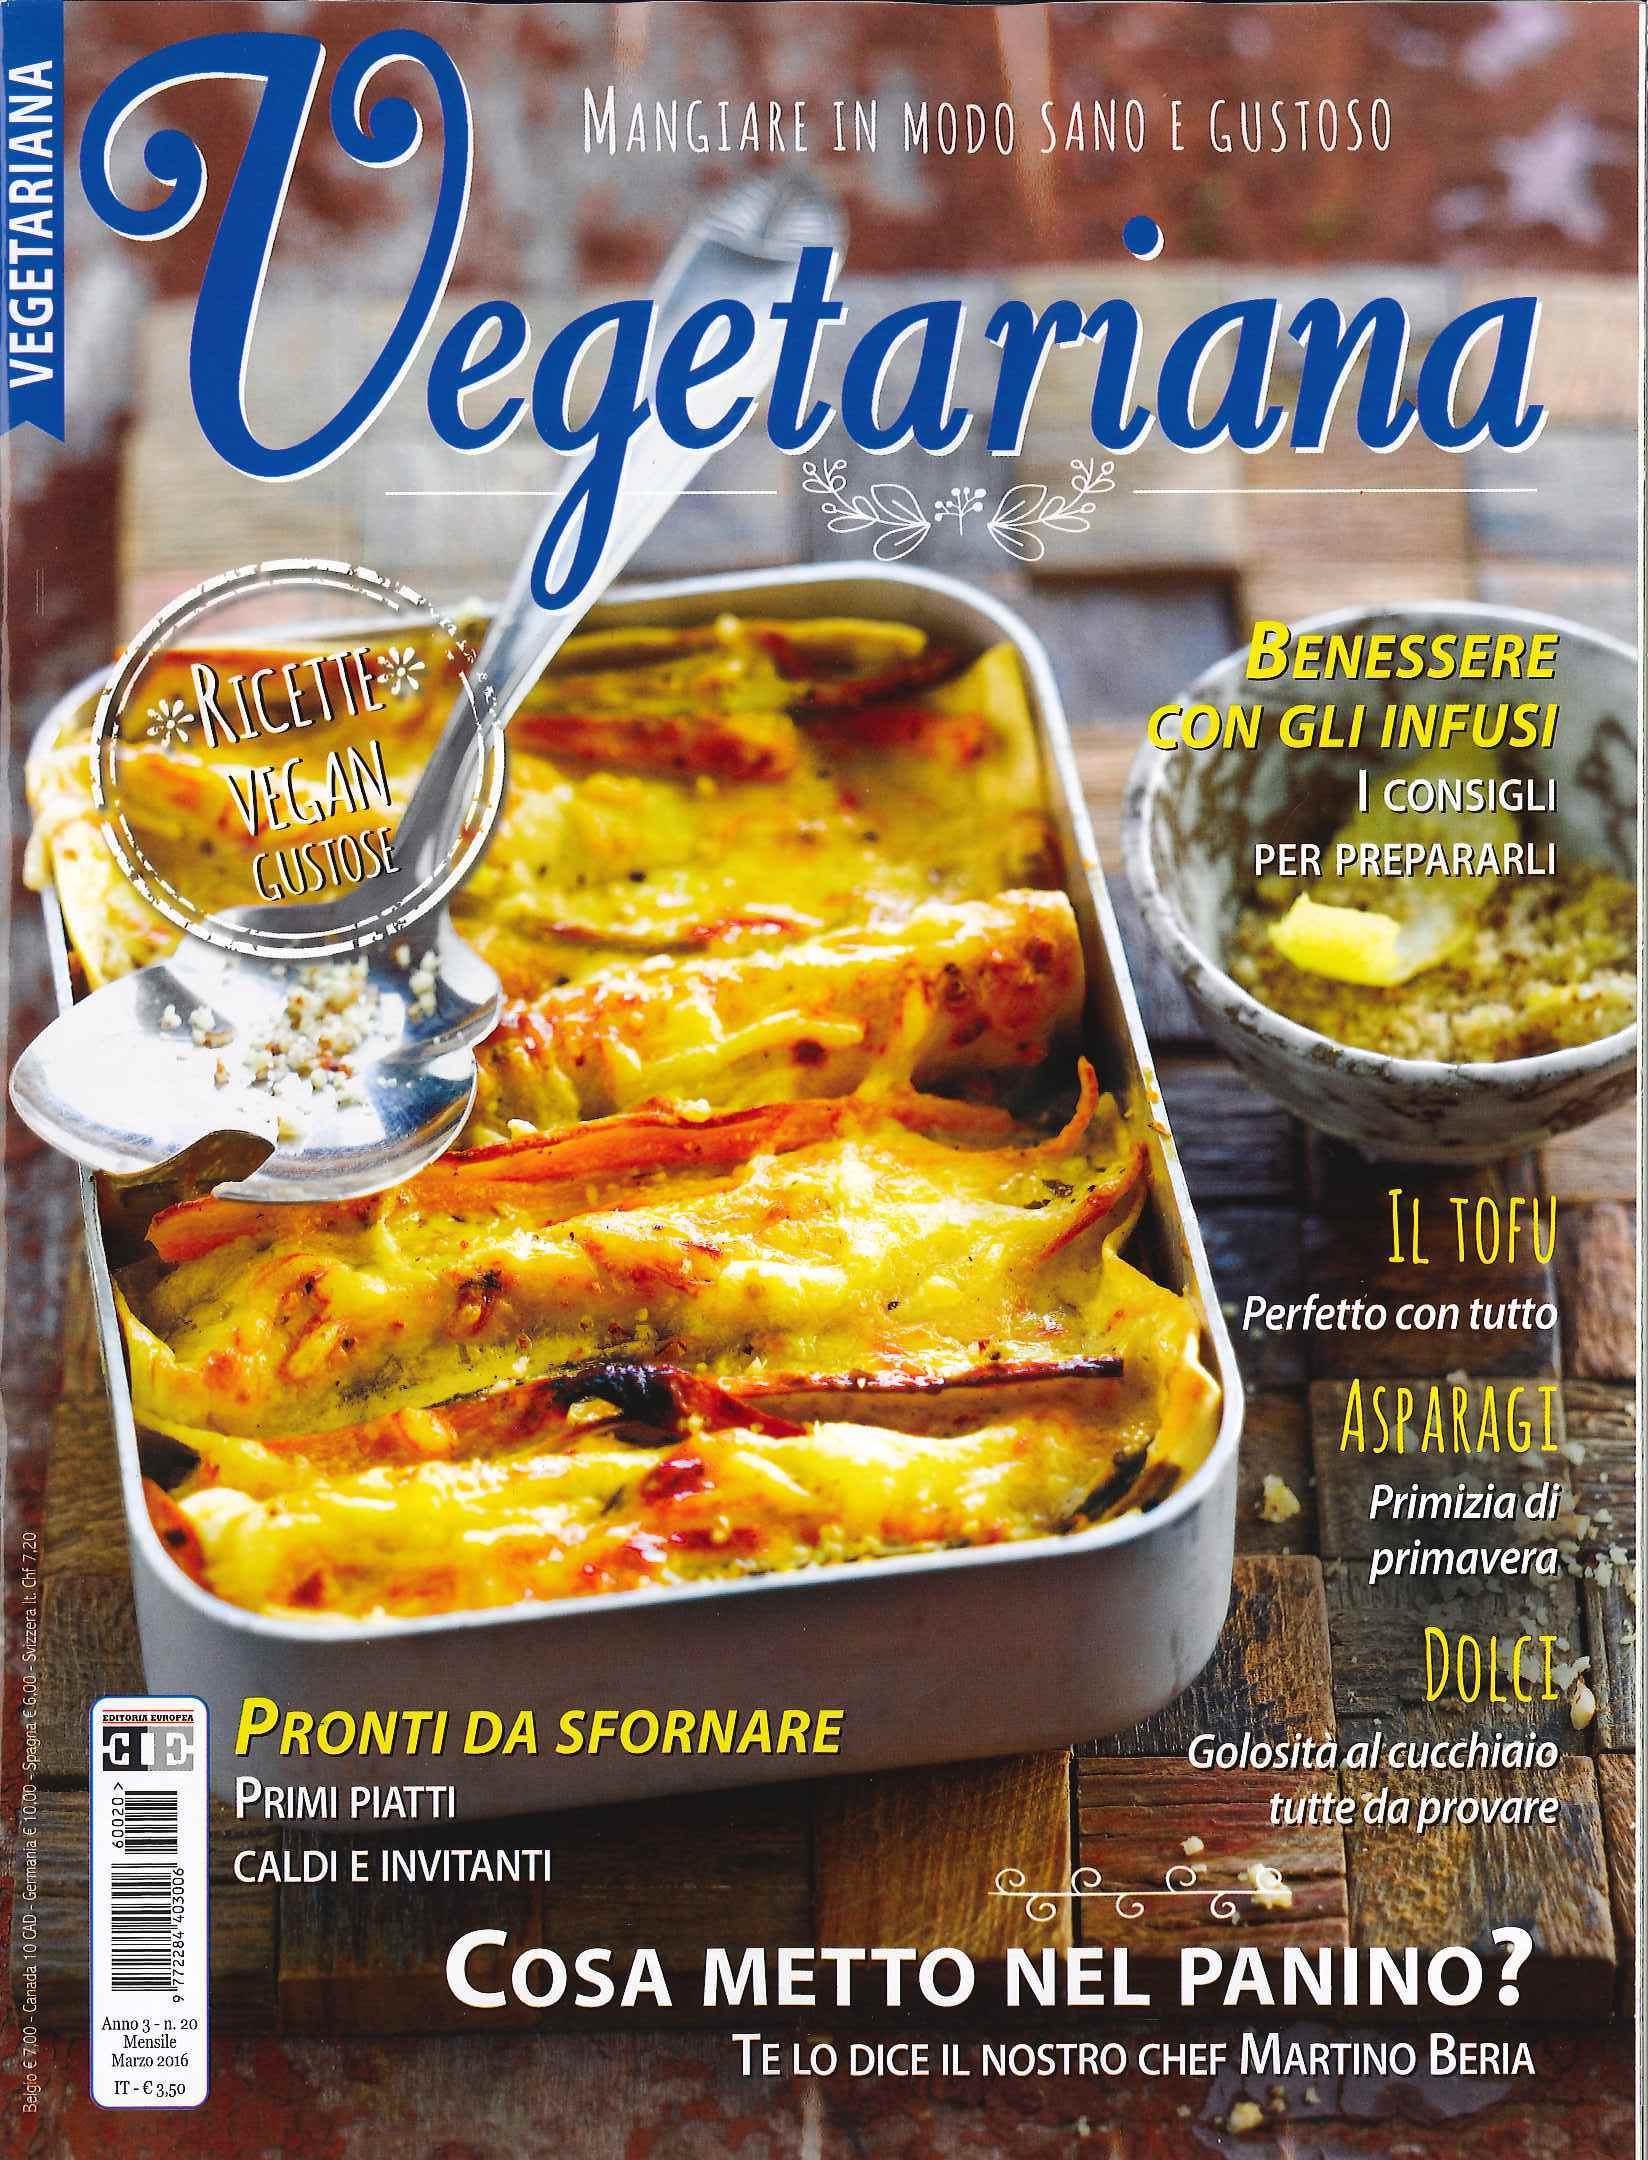 01.03.2016_VEGETARIANA_Cover